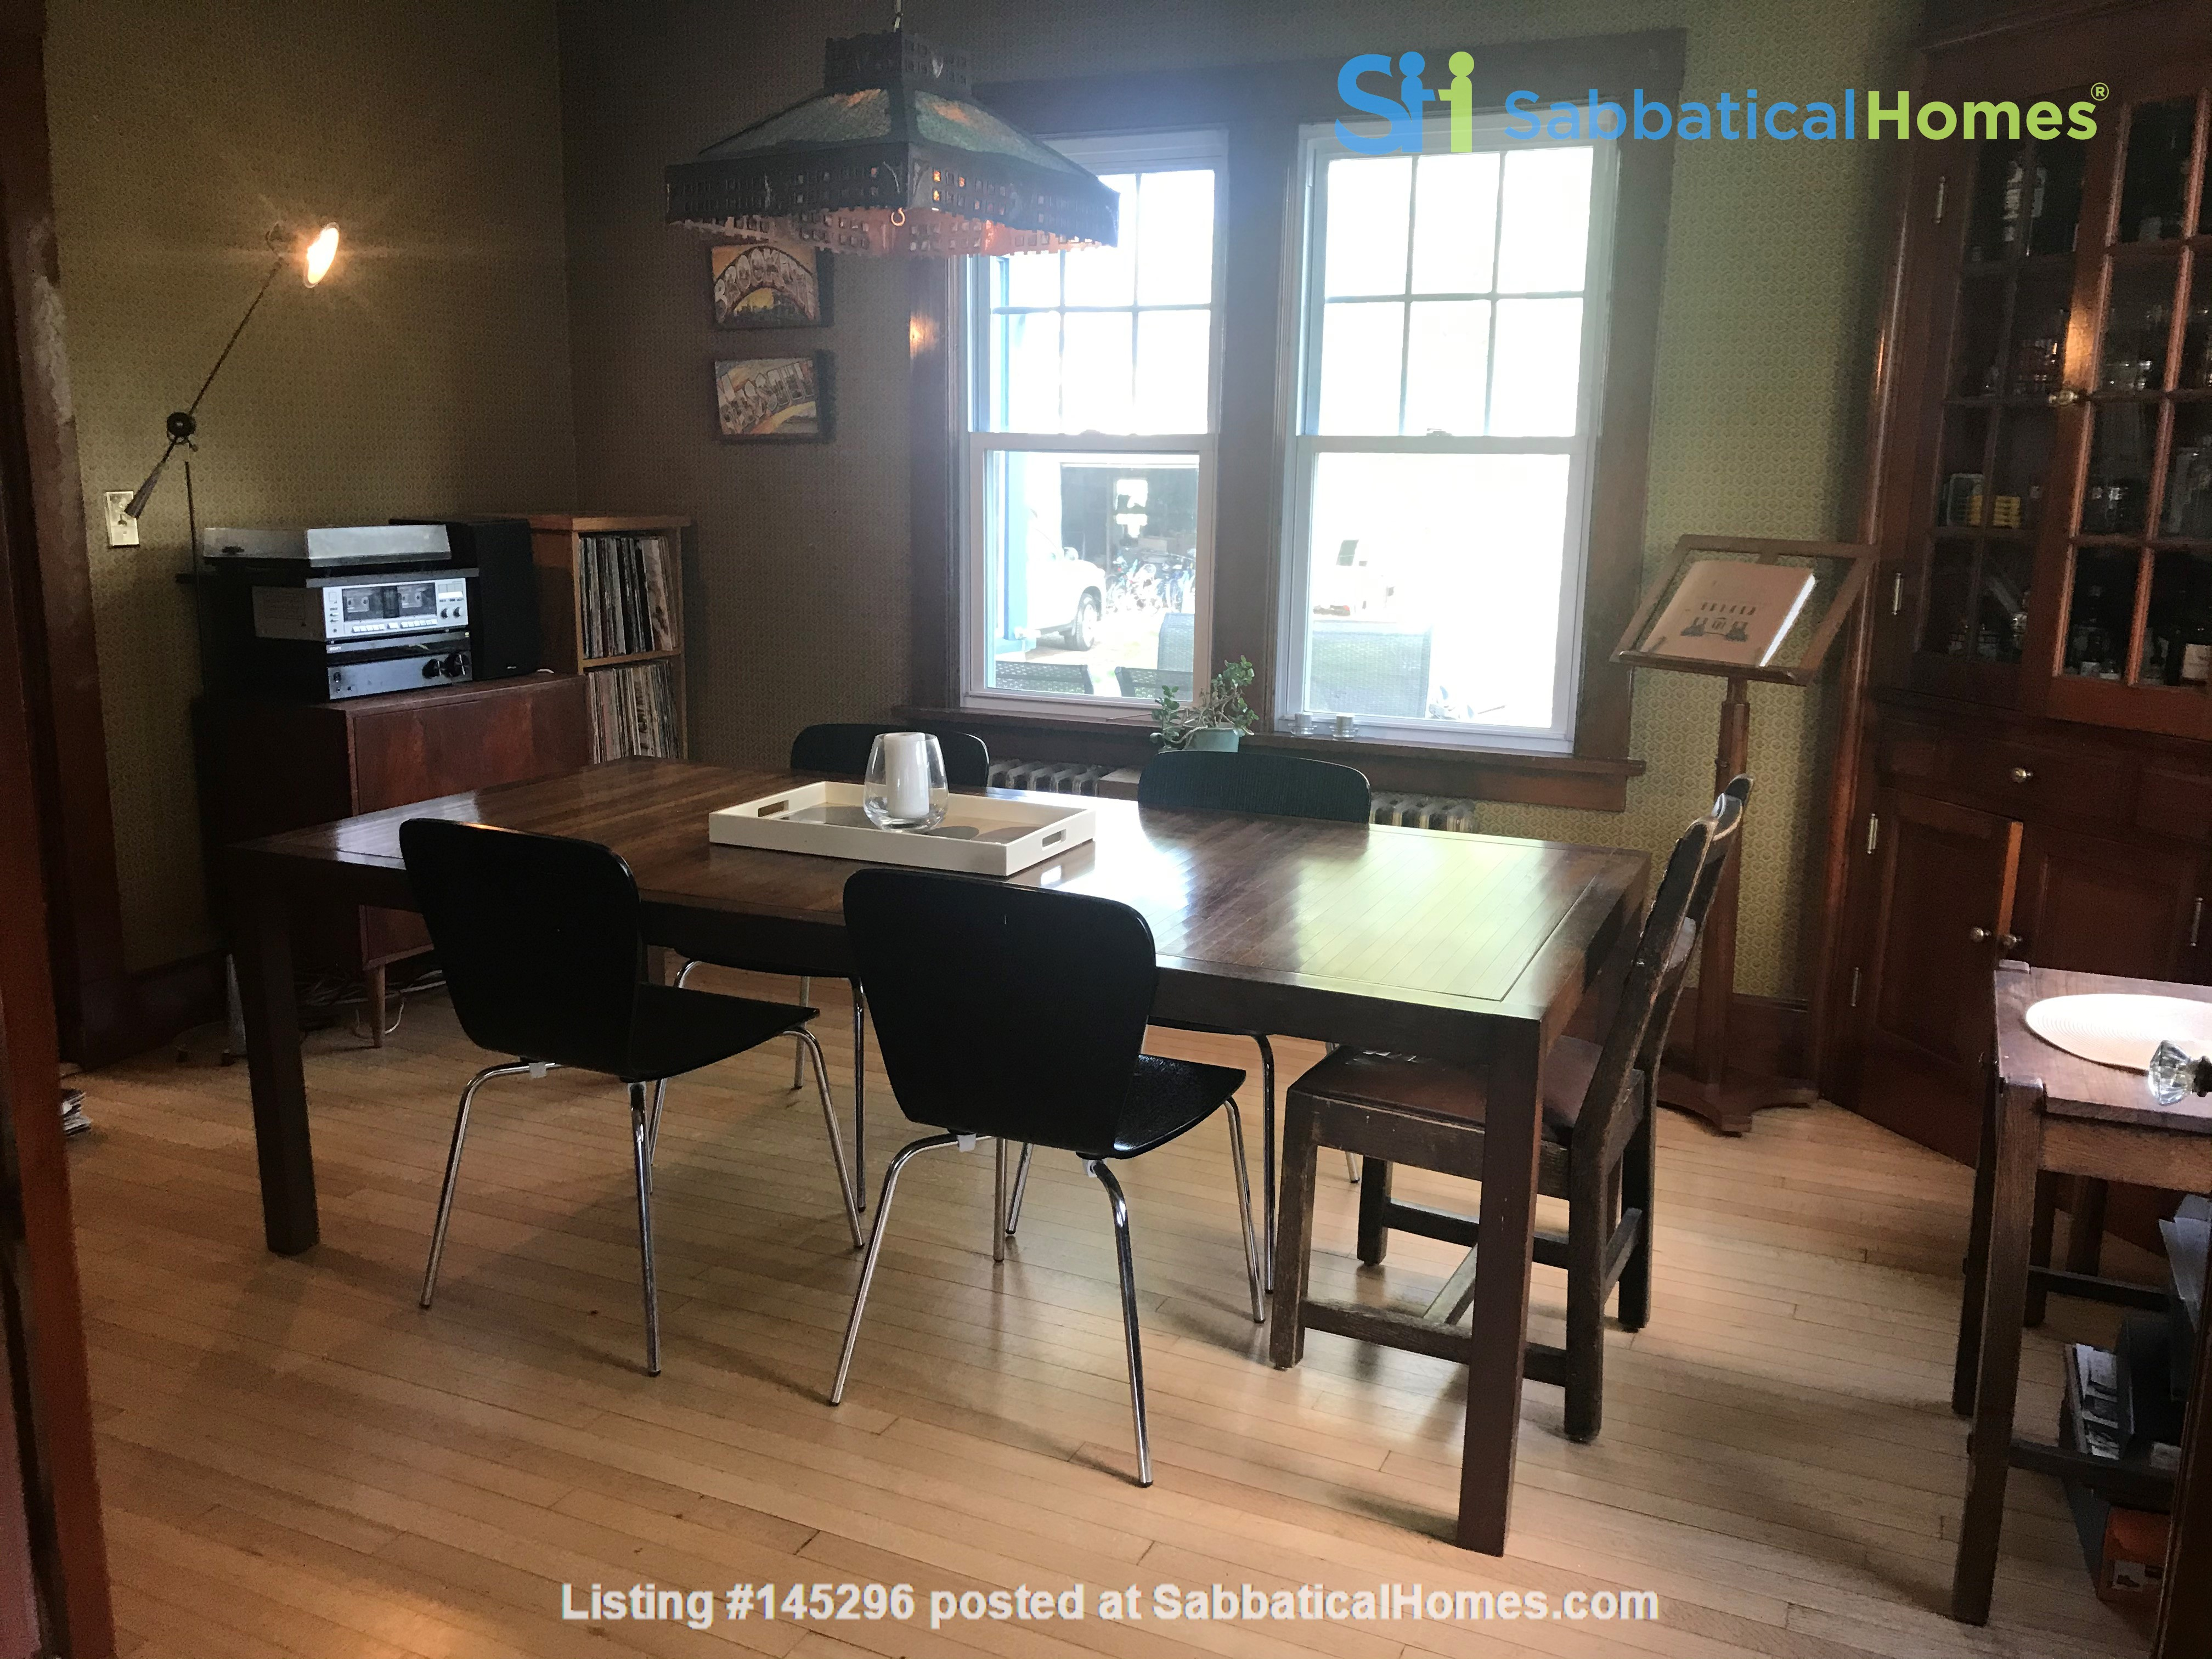 Charming 4 bedroom home in Williamstown - walk to campus and downtown Home Rental in Williamstown, Massachusetts, United States 1